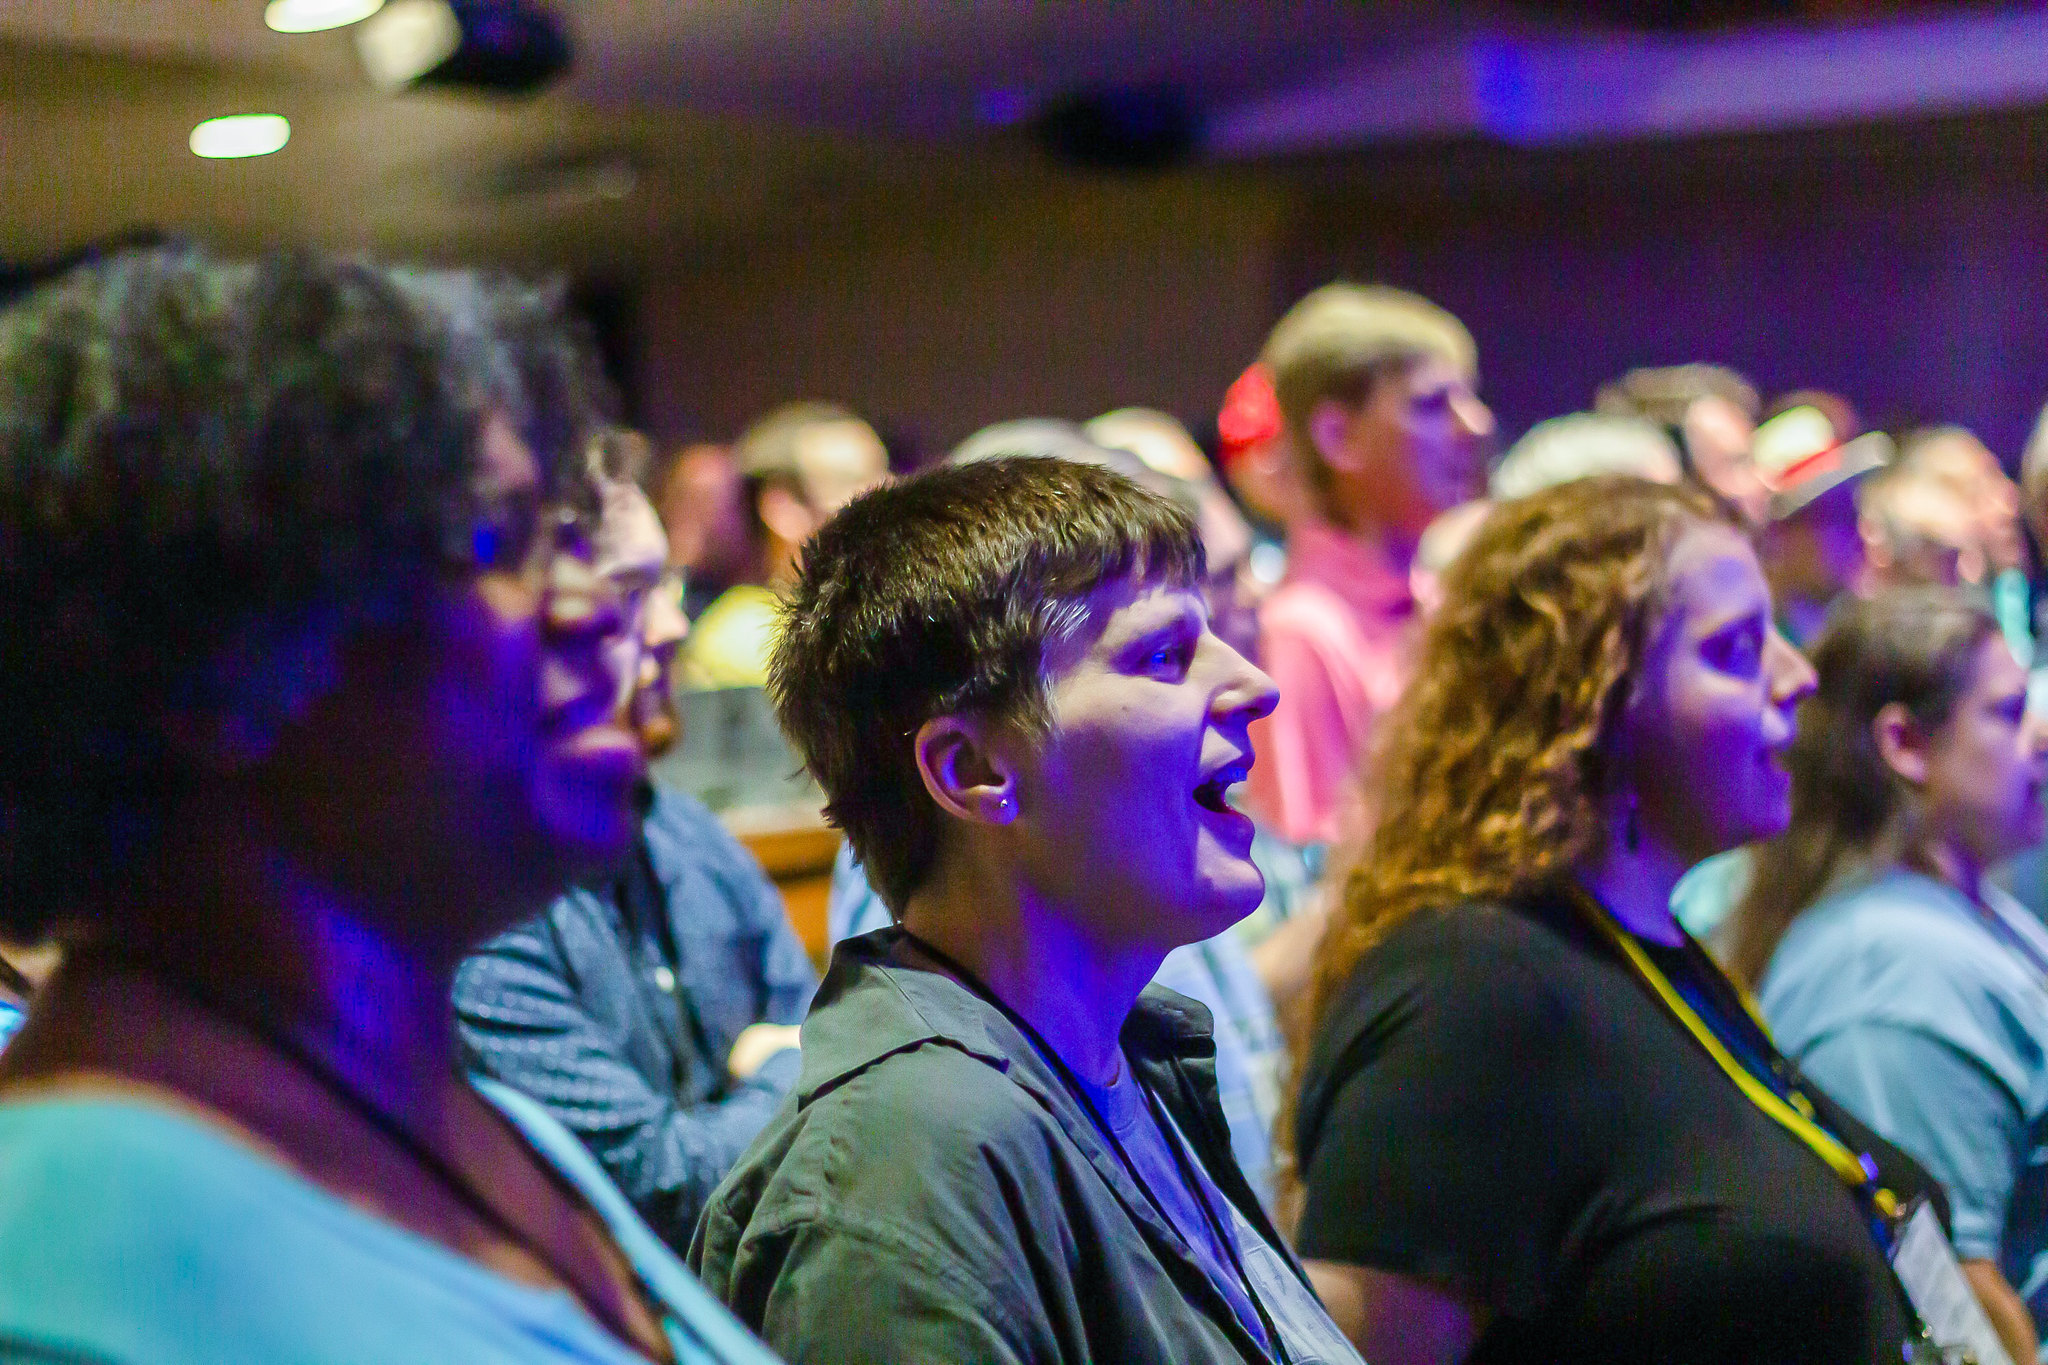 People sing during a session at Harmony University